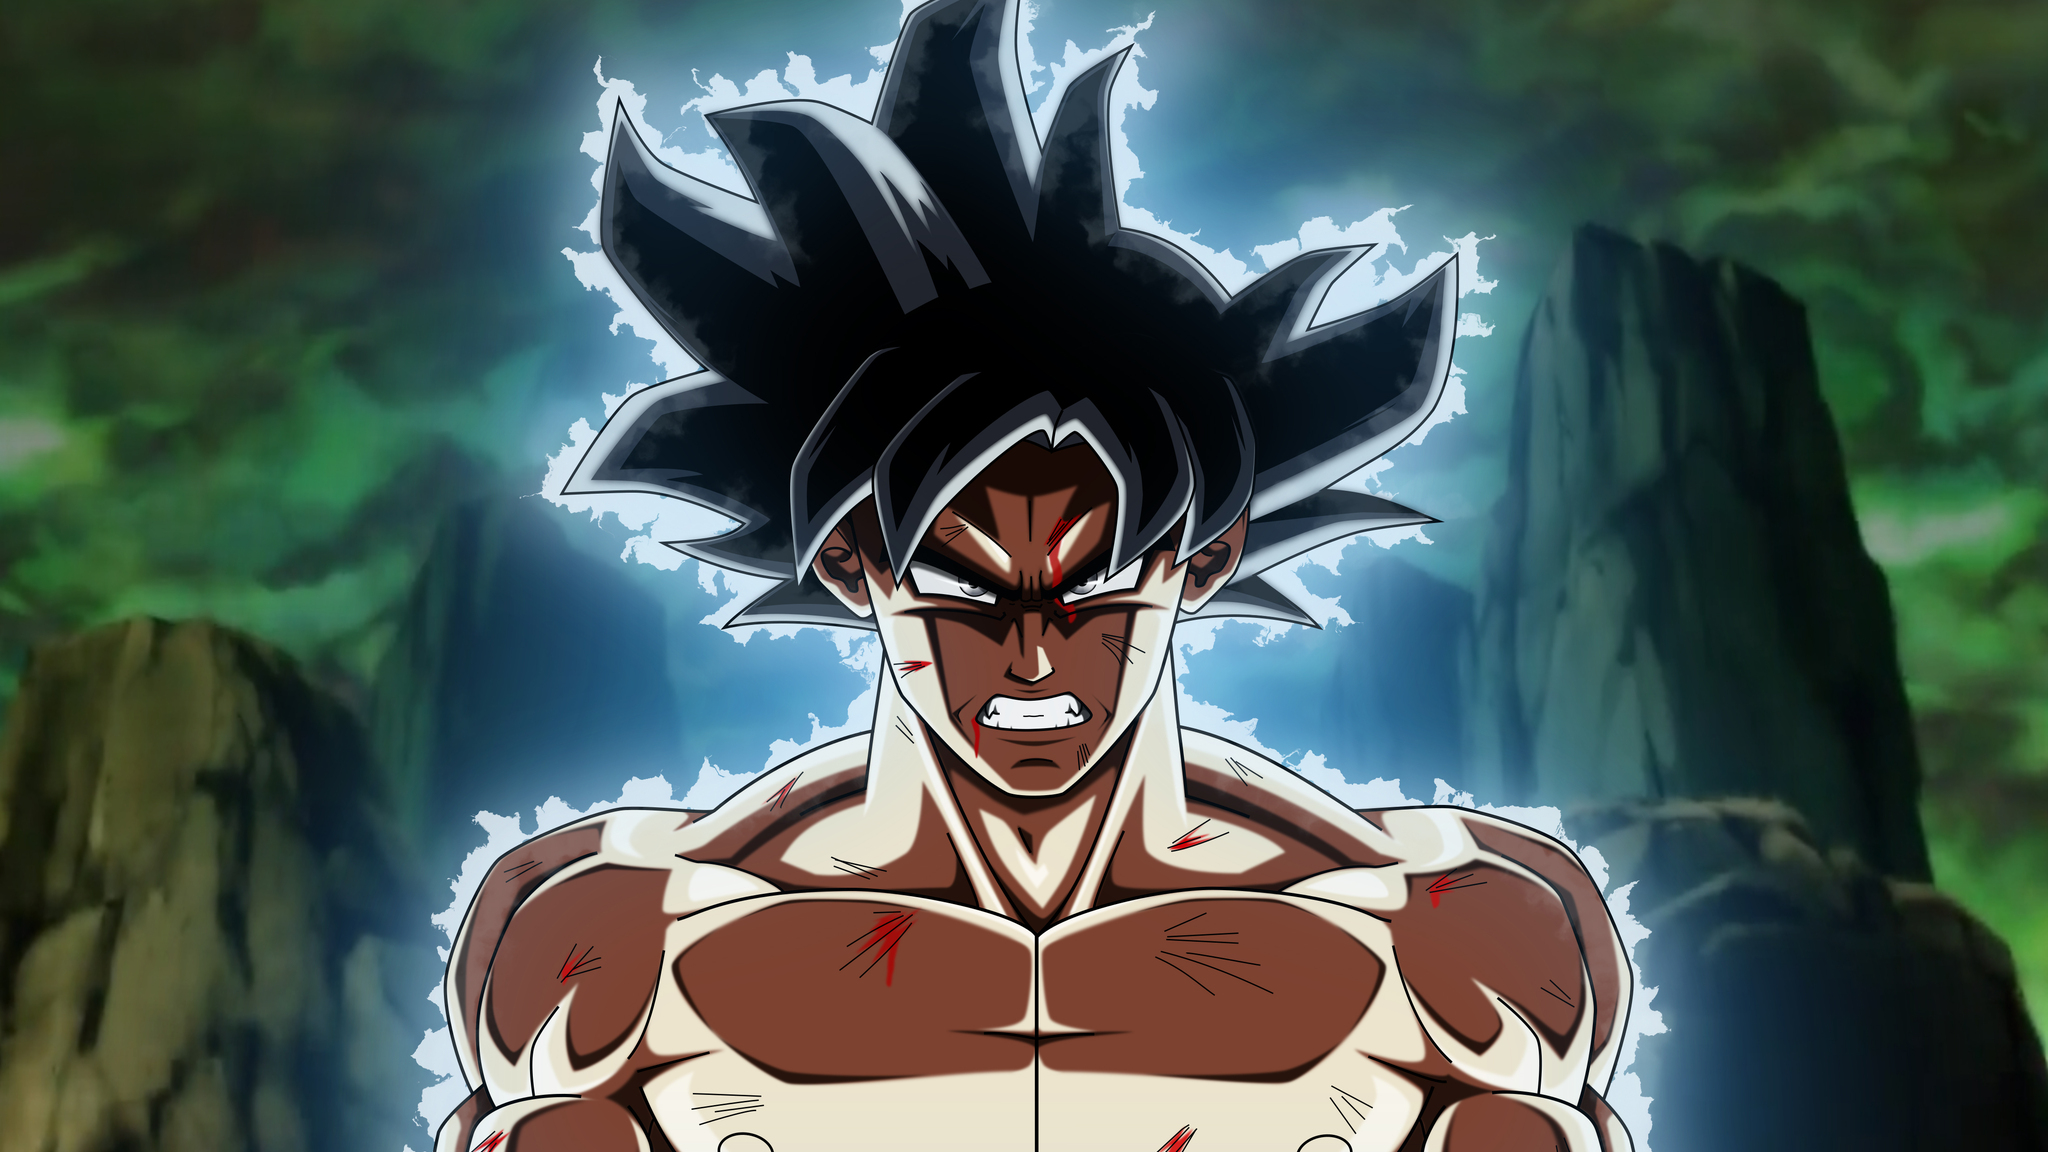 2048x1152 Dragon Ball Super Goku Ultra Instinct 2048x1152